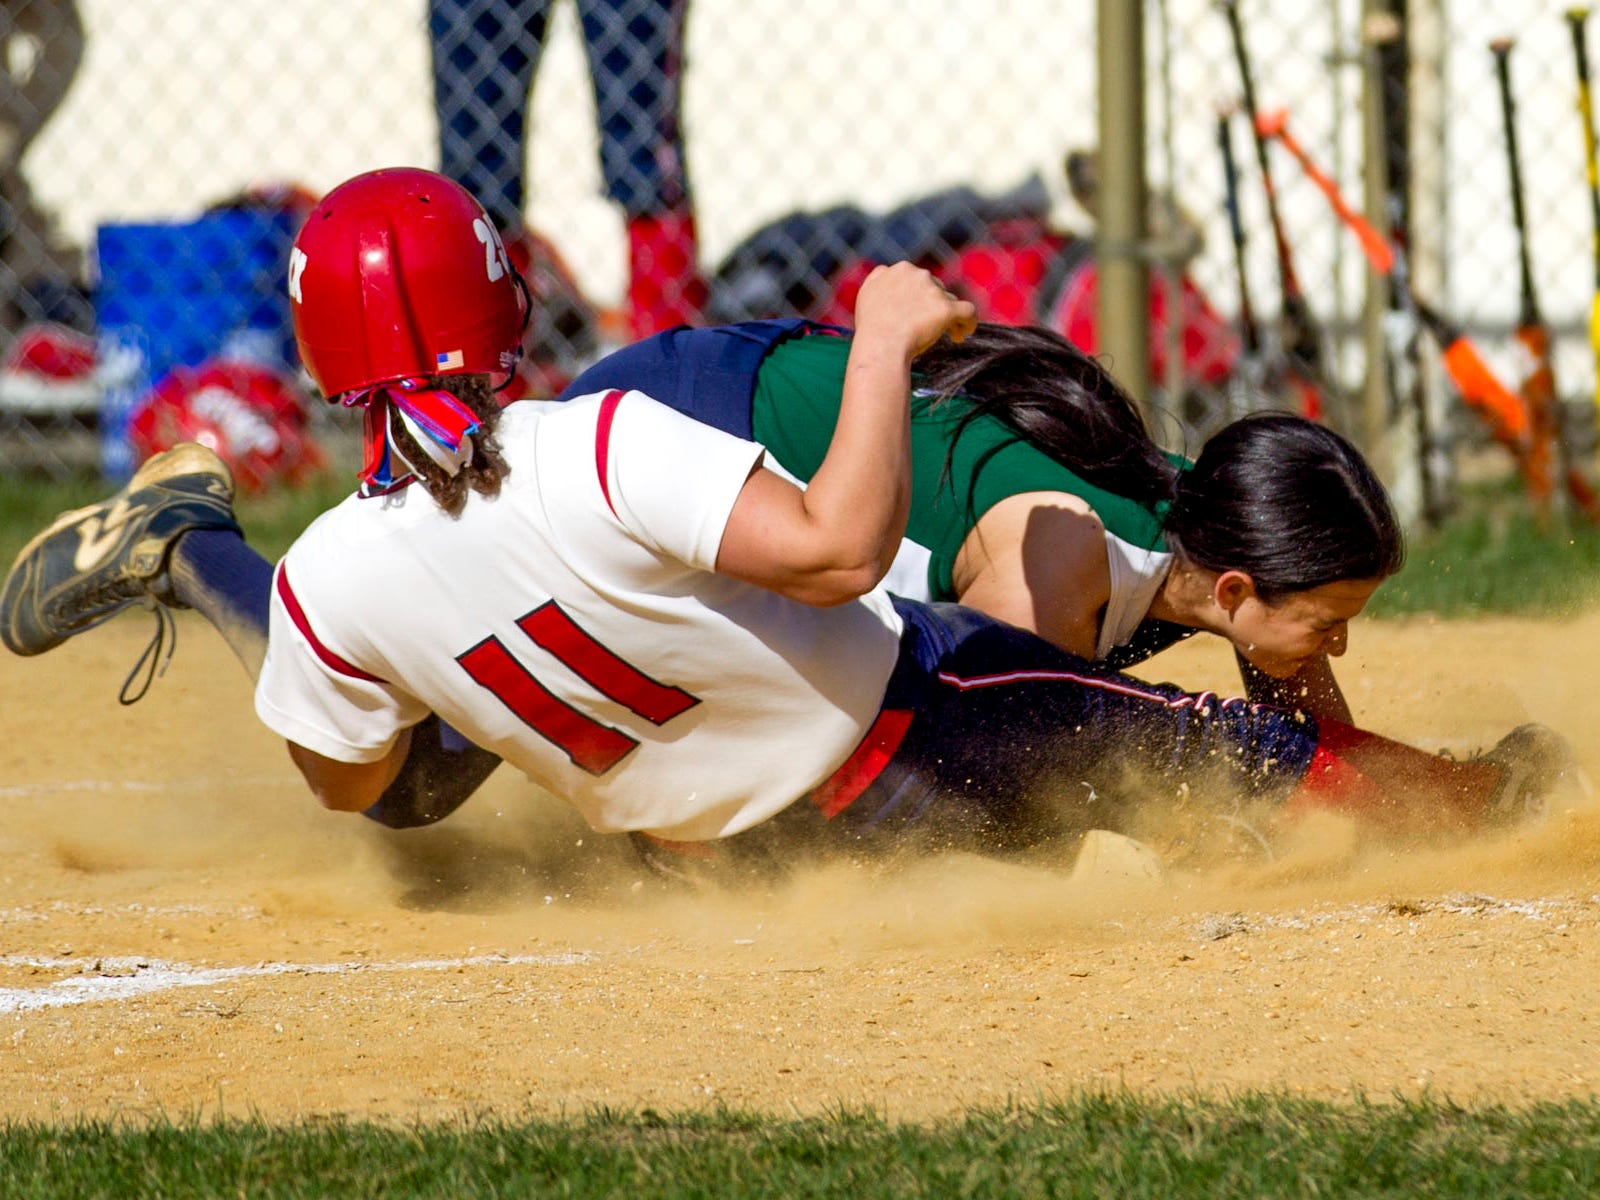 Wall's Katie Wingel slides in safely at home after a wild pitch by Colts Neck's Olivia Sardoff at Colts Neck High School. Thursday, April 16, 2015, Colts Neck, NJ. Mike McLaughlin/Asbury Park Press ASB 0417 softball roundup